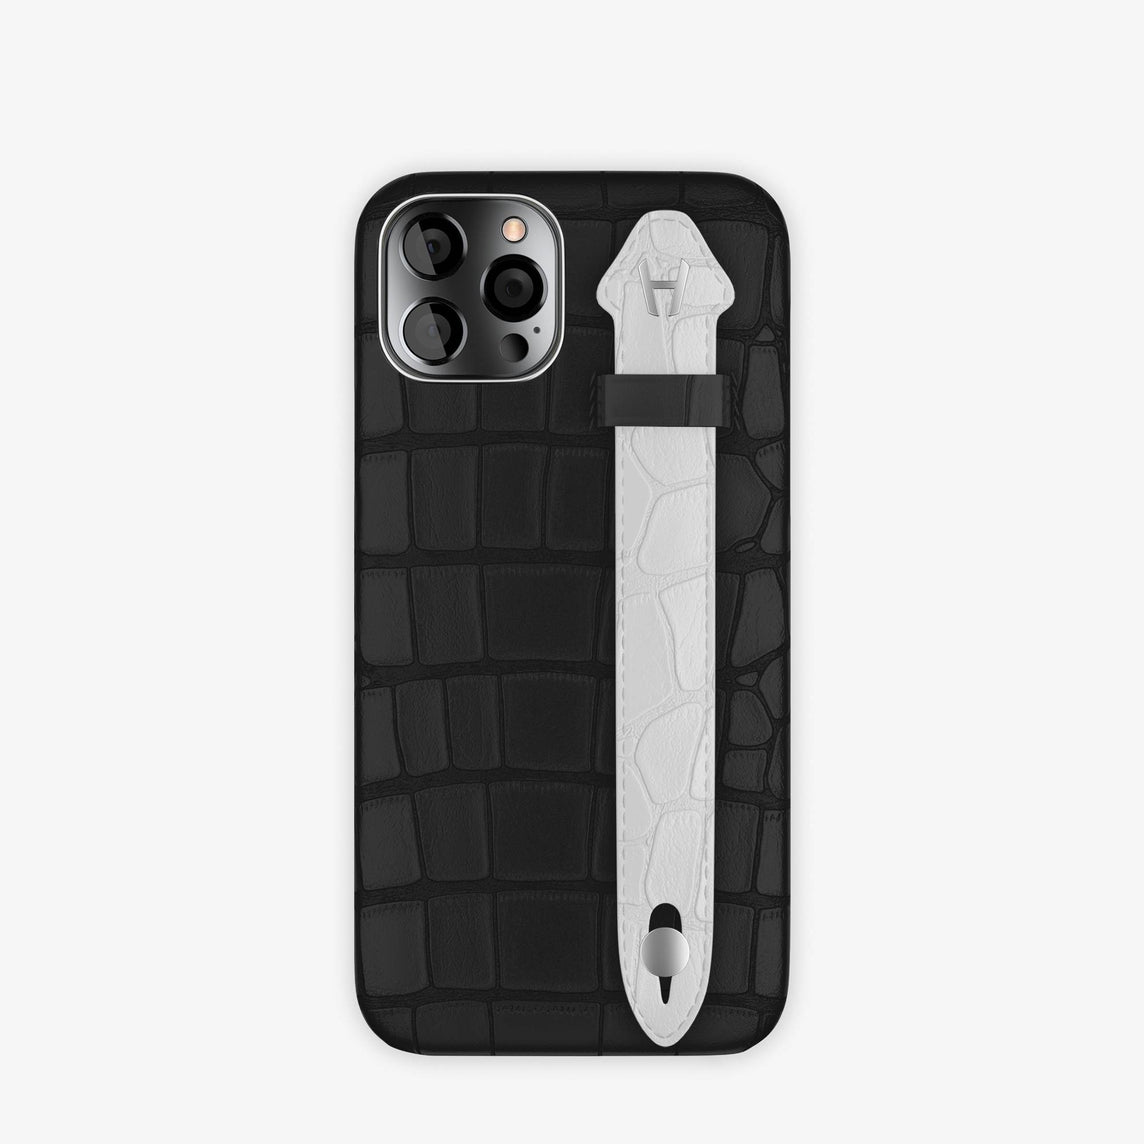 Alligator Side Finger Case iPhone 12 & iPhone 12 Pro | Black/White -Stainless Steel